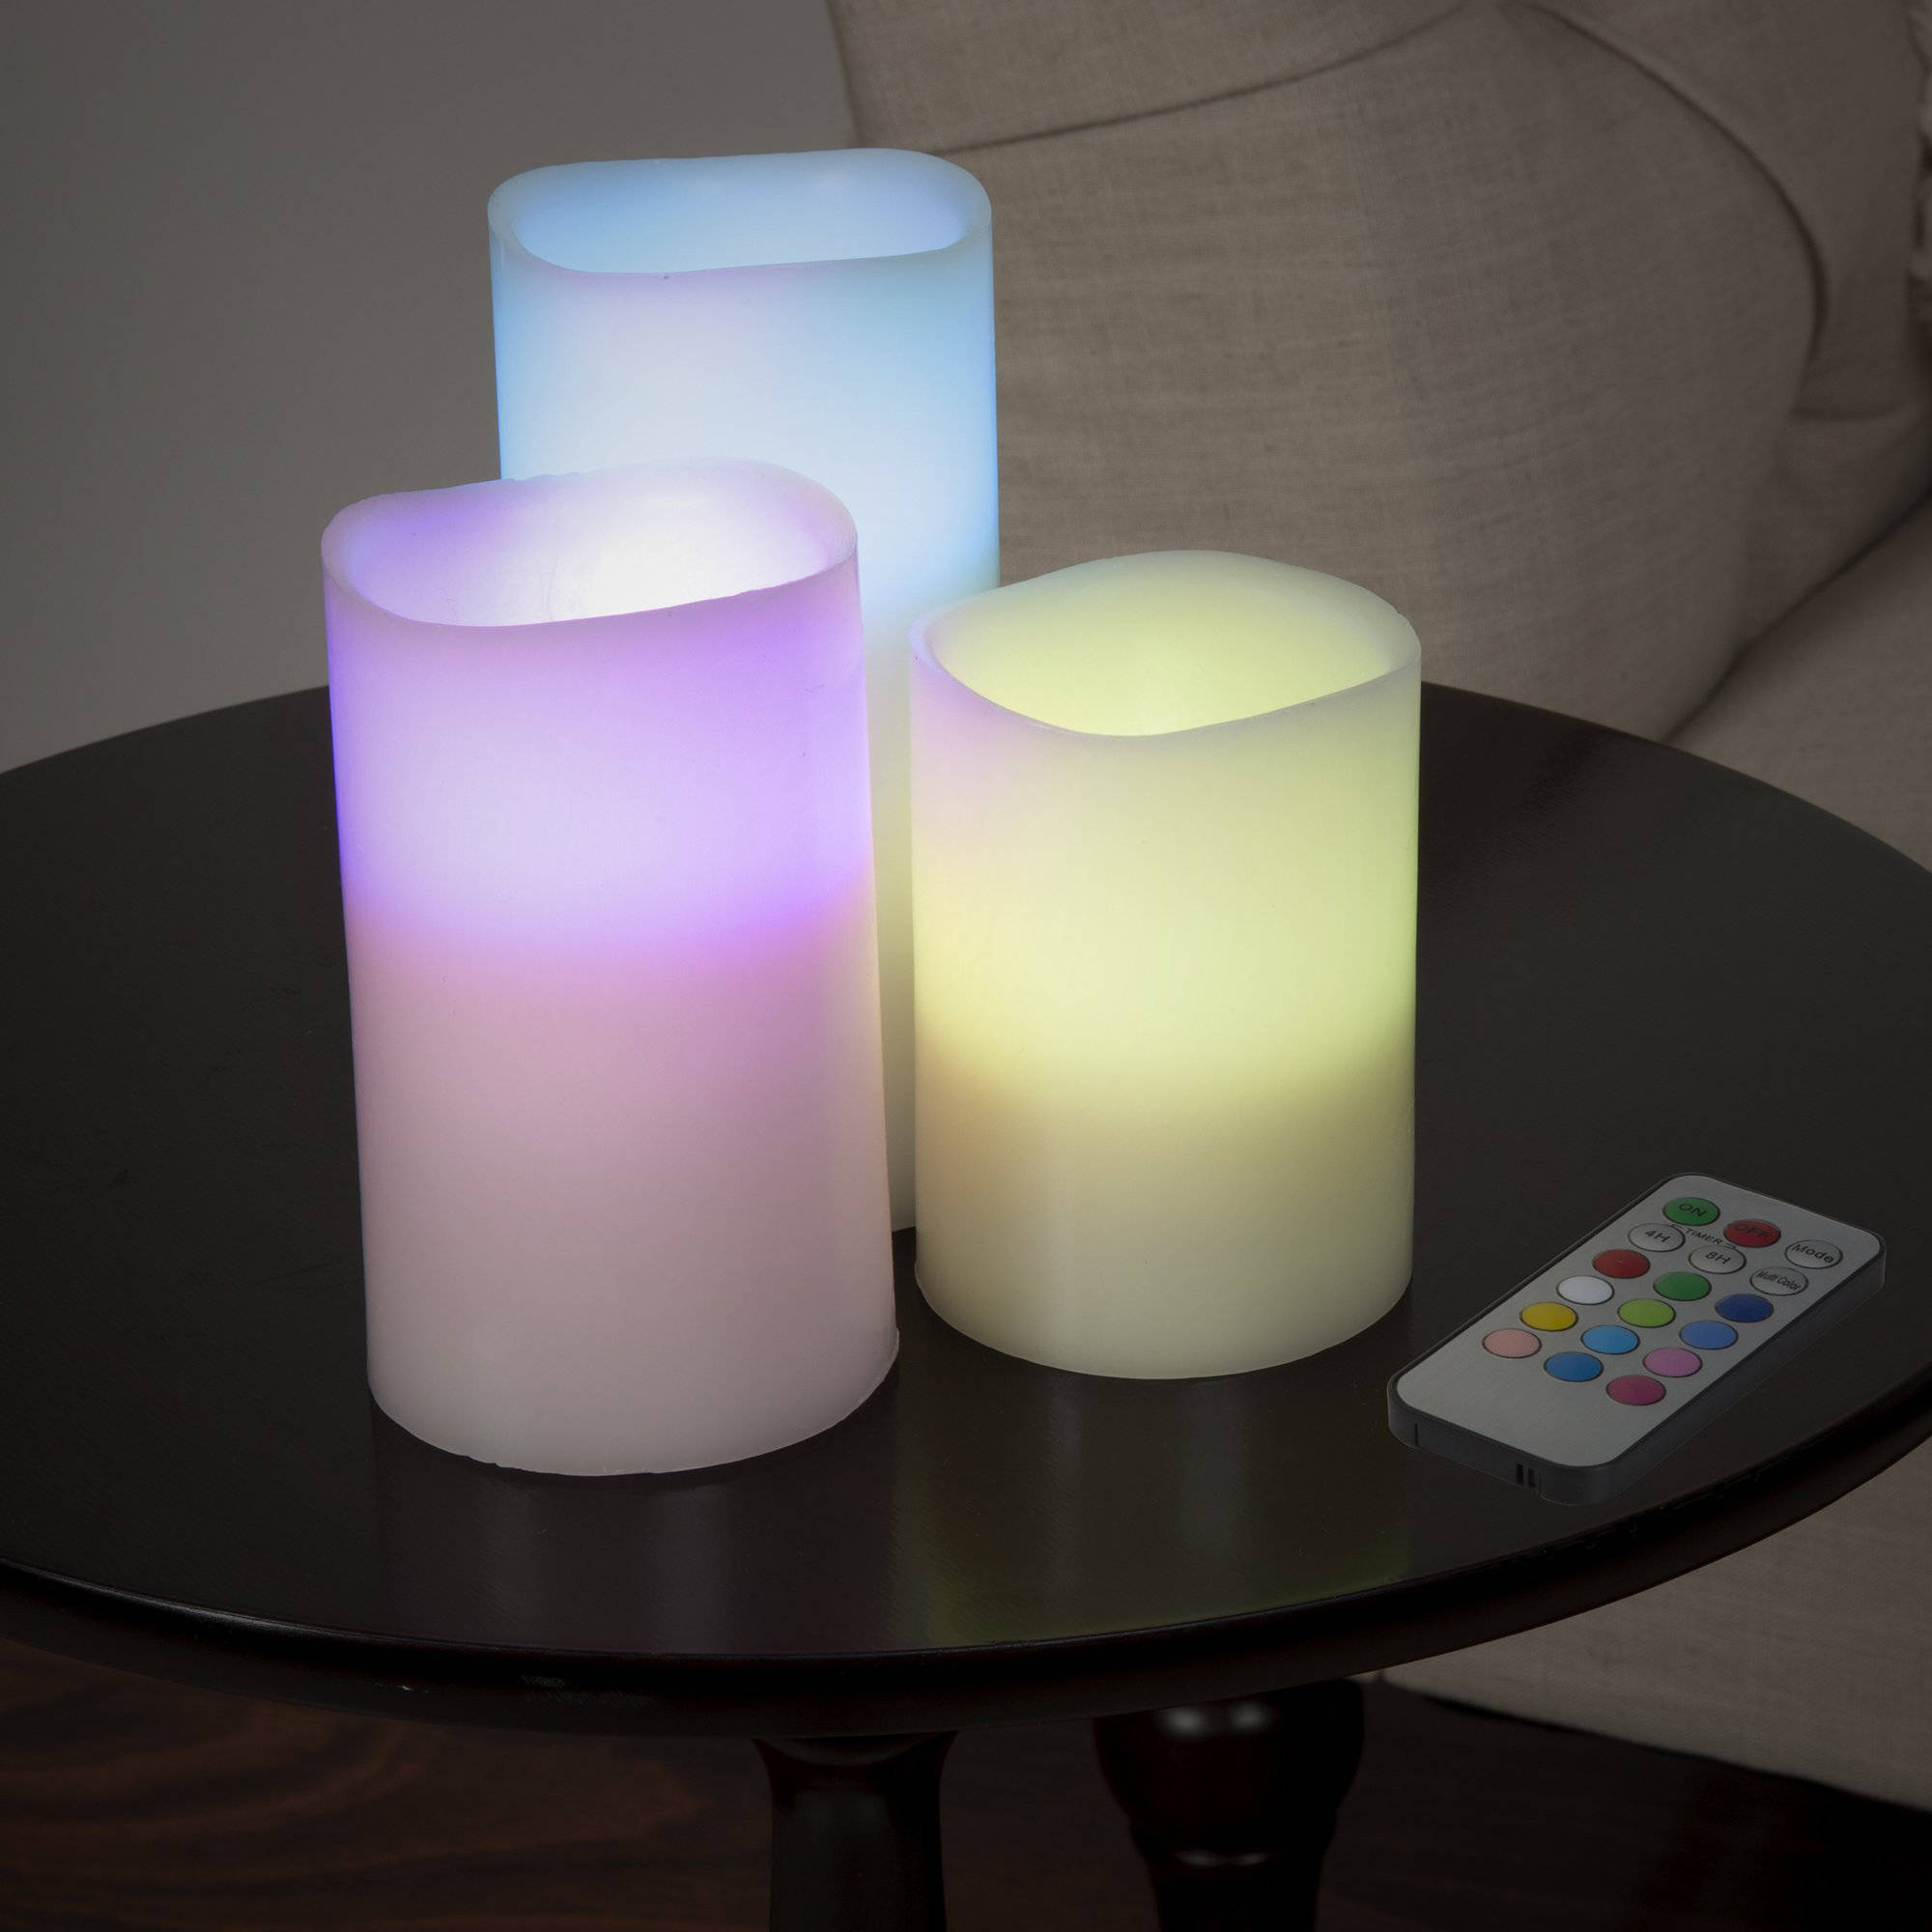 Lavish Home 3-Piece LED Color Changing Flameless Candle Set with Remote